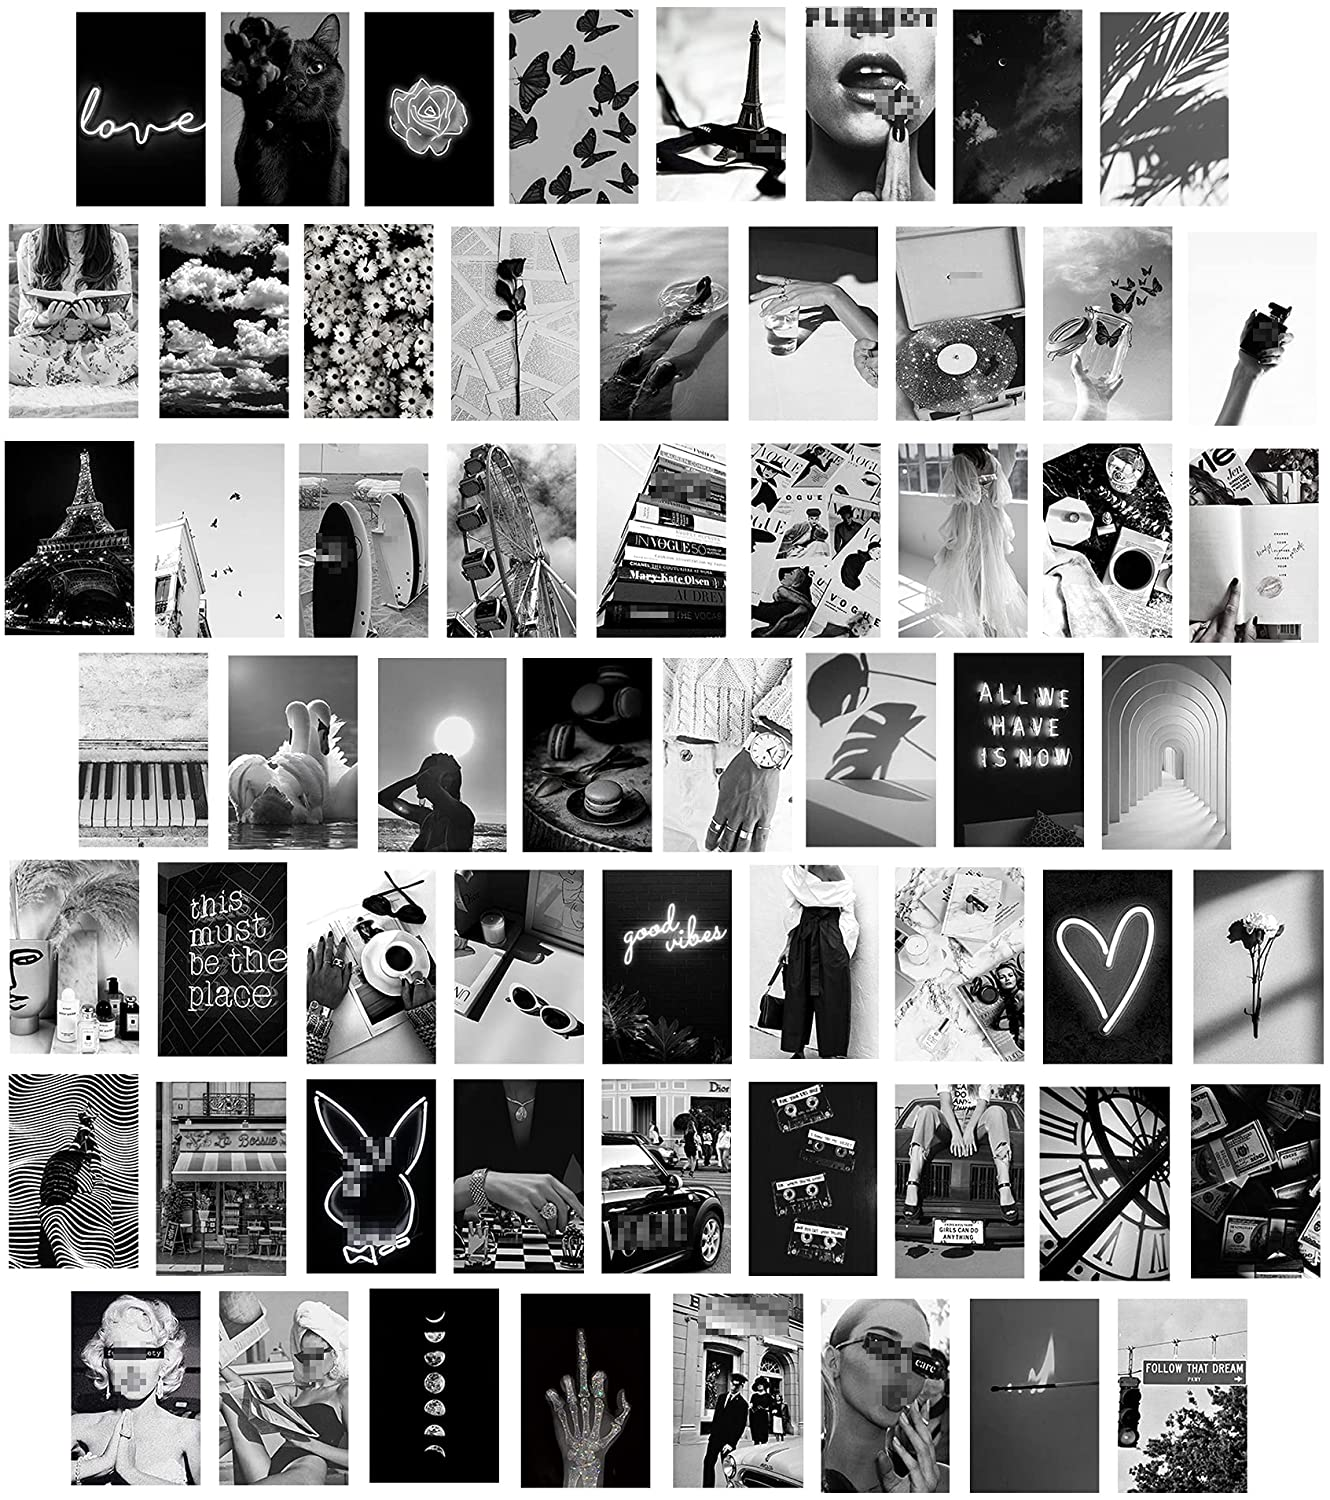 Btaidi White Black Aesthetic Wall Collage Kit, 60 Pieces 4x6 inch, Teen Girls Bedroom Decor, Dorm Wall Decor, Photo Collection